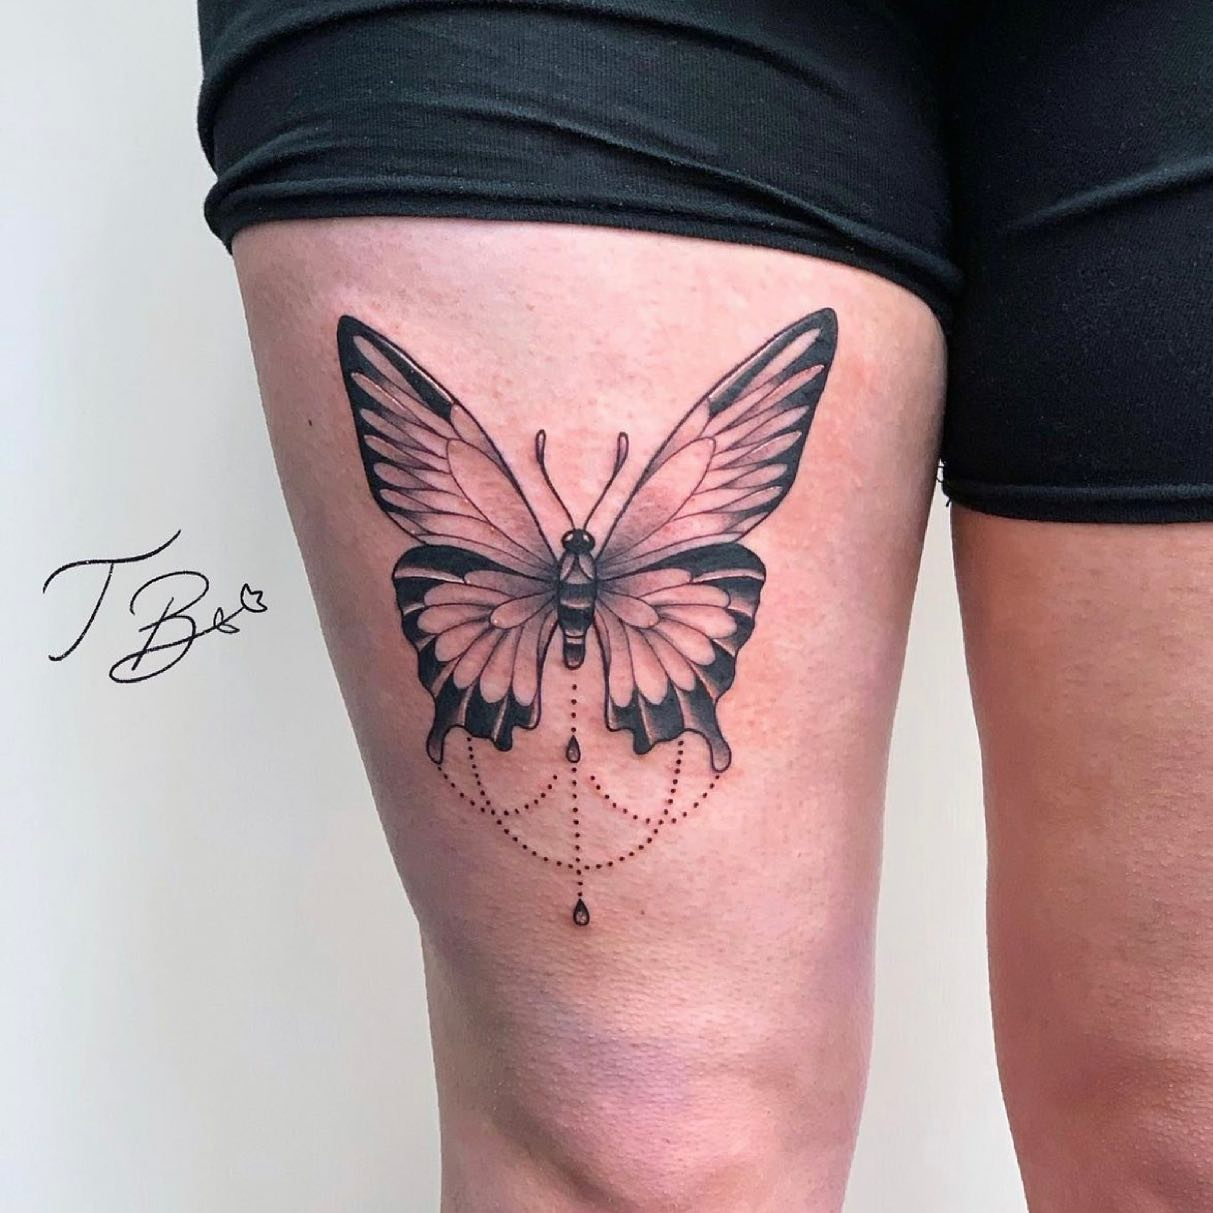 Gorgeous butterfly design by the wonderful thaisblanc ✨🦋  If you would like to get tattooed, then please fill out the tattoo enquiry form on our website 💫                           totaltattoo barber_dts easytattoo_uk eternalink dynamiccolor lockdownneedle stencilstuff